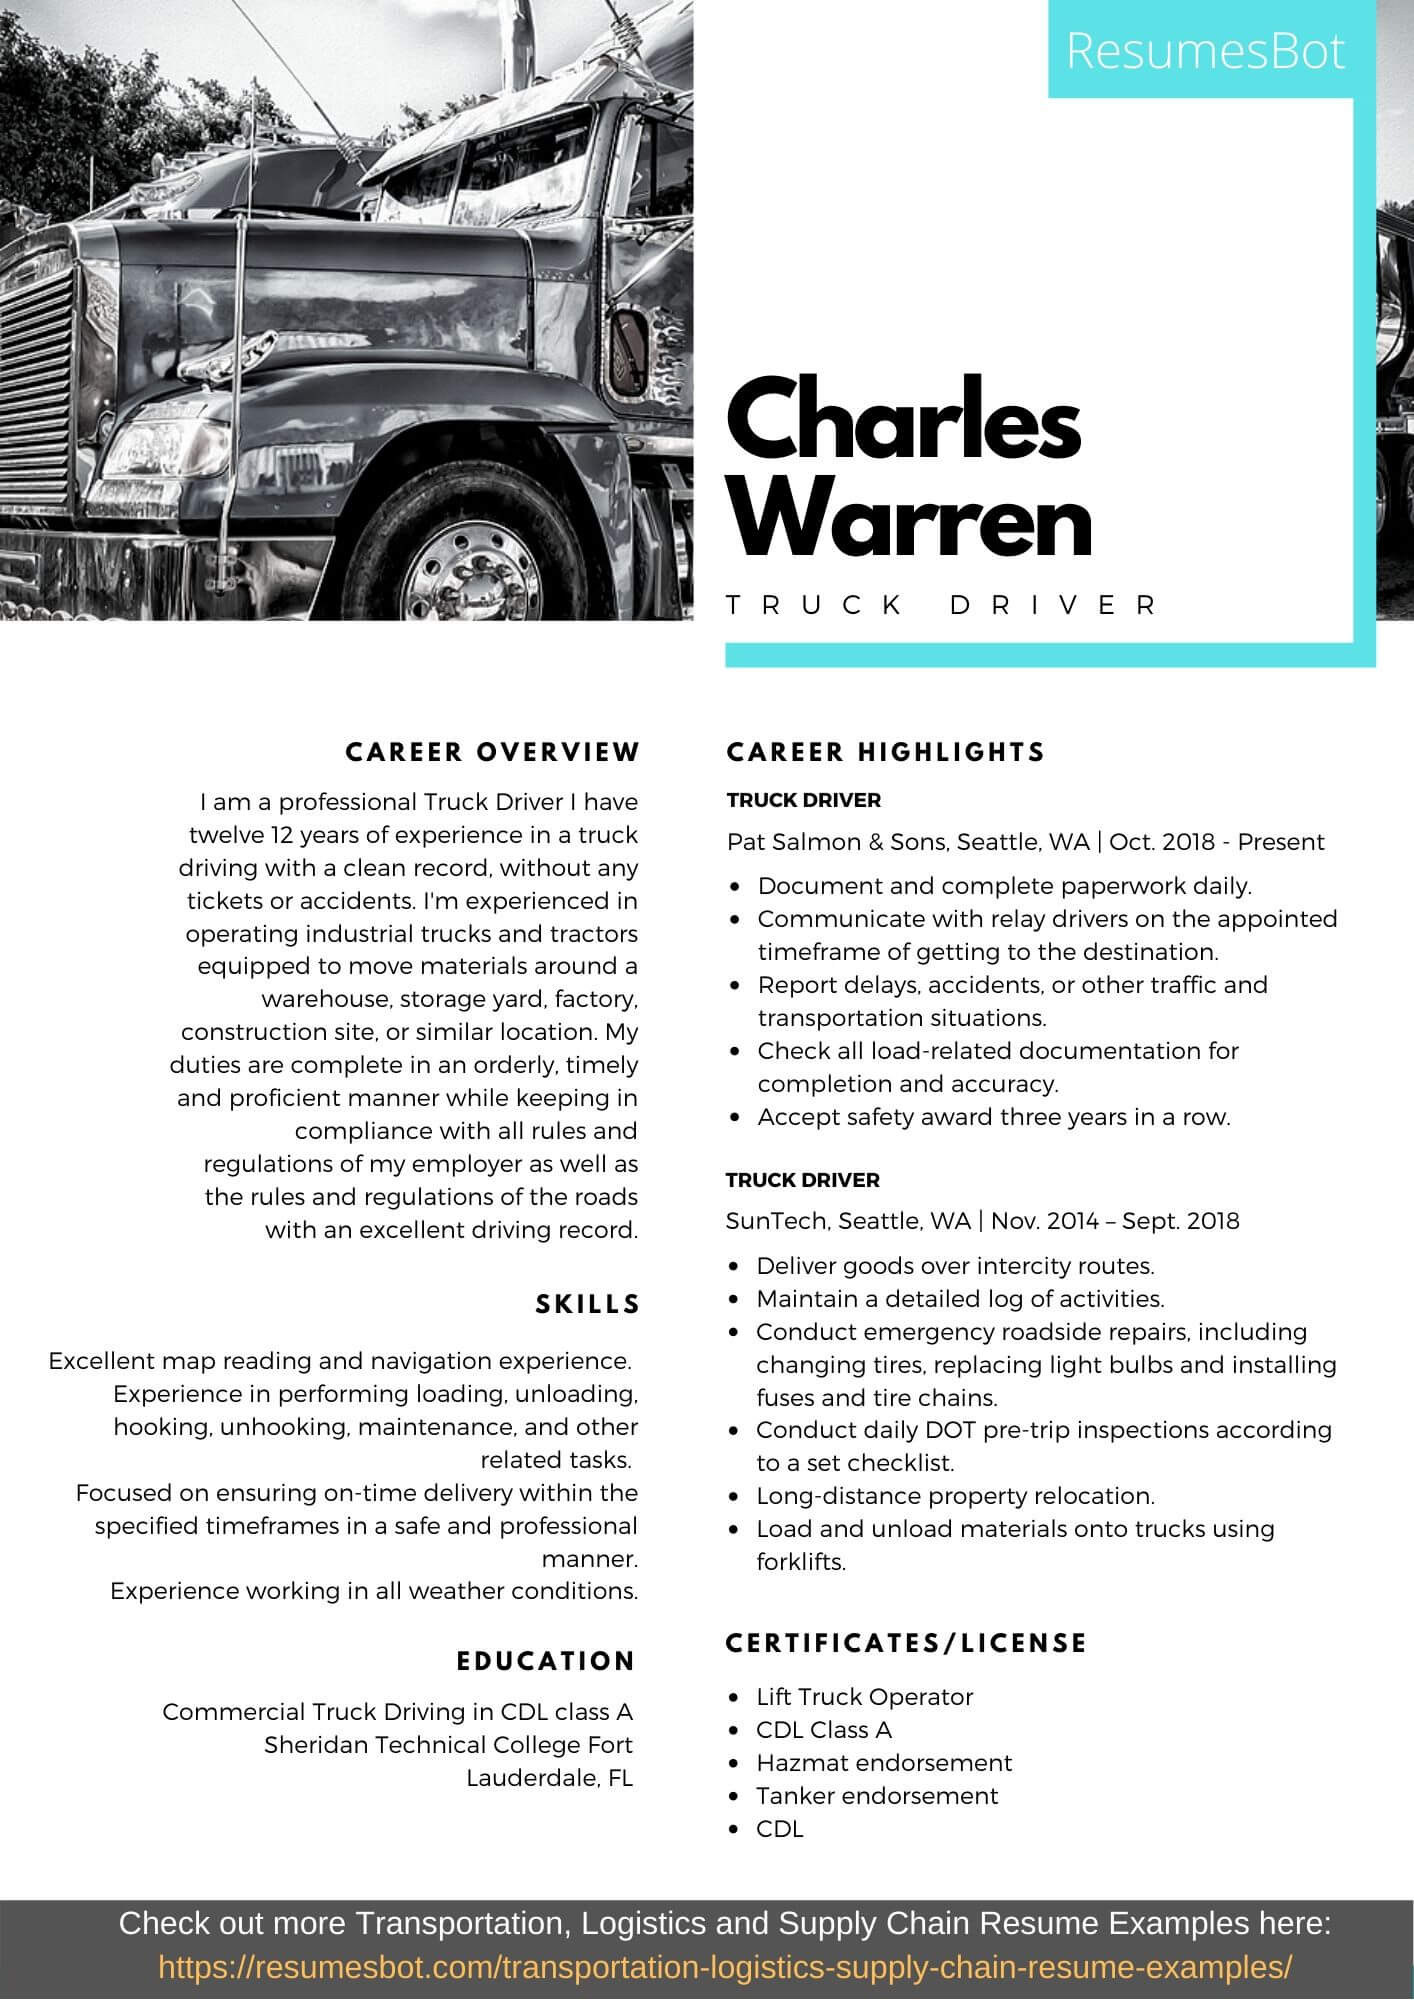 truck driver resume samples and tips pdf resumes bot objective example best busser food Resume Truck Driver Resume Objective